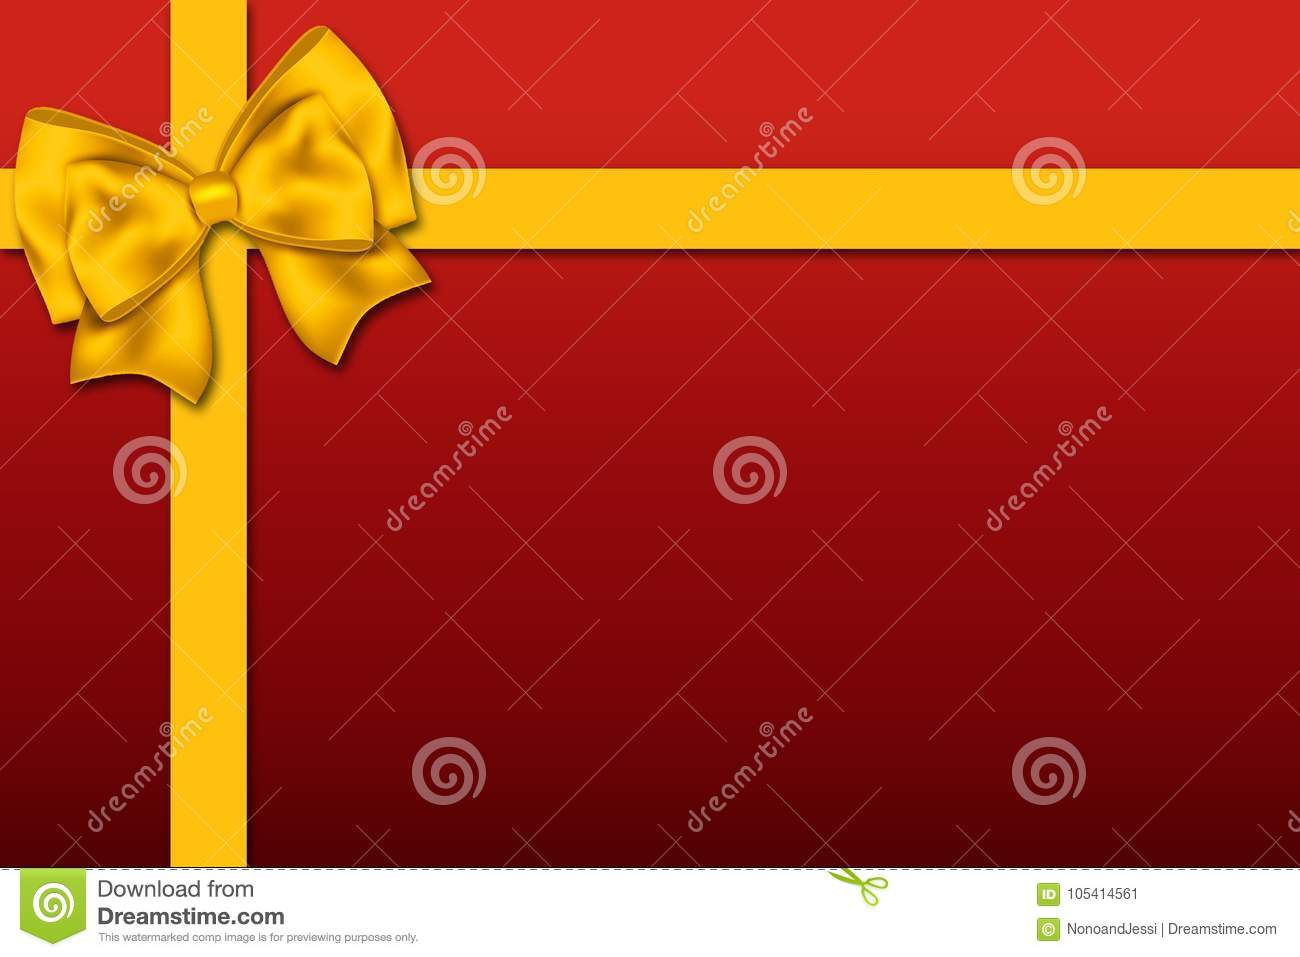 Gift-shaped illustration with a big ribbon decoration